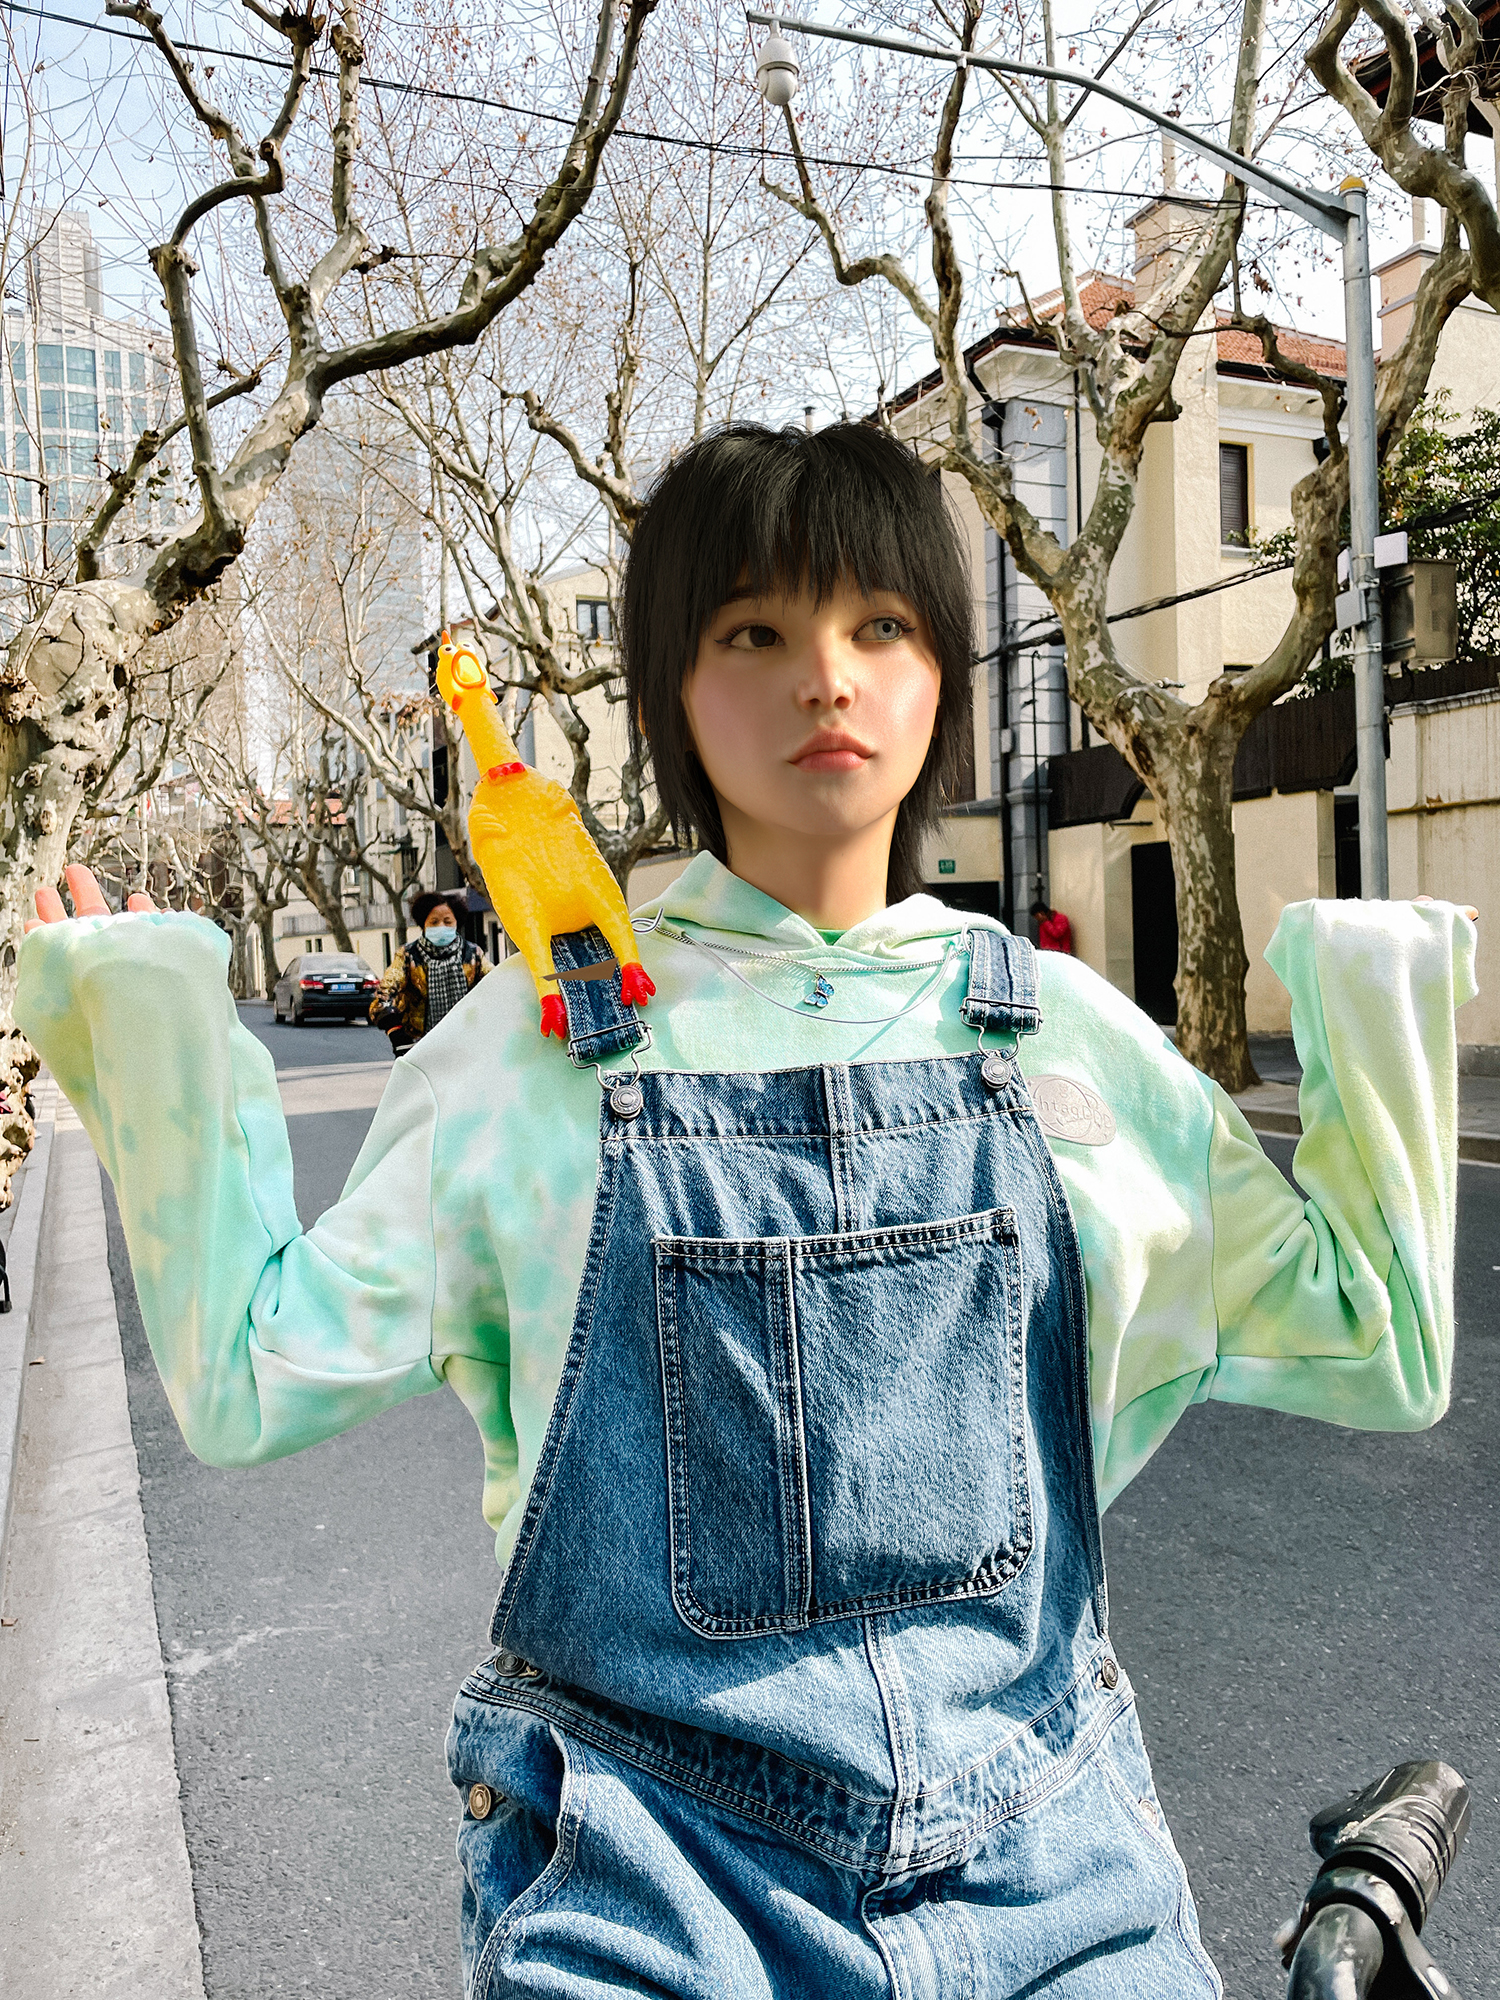 Maie is an upcoming virtual persona living in Shanghai.